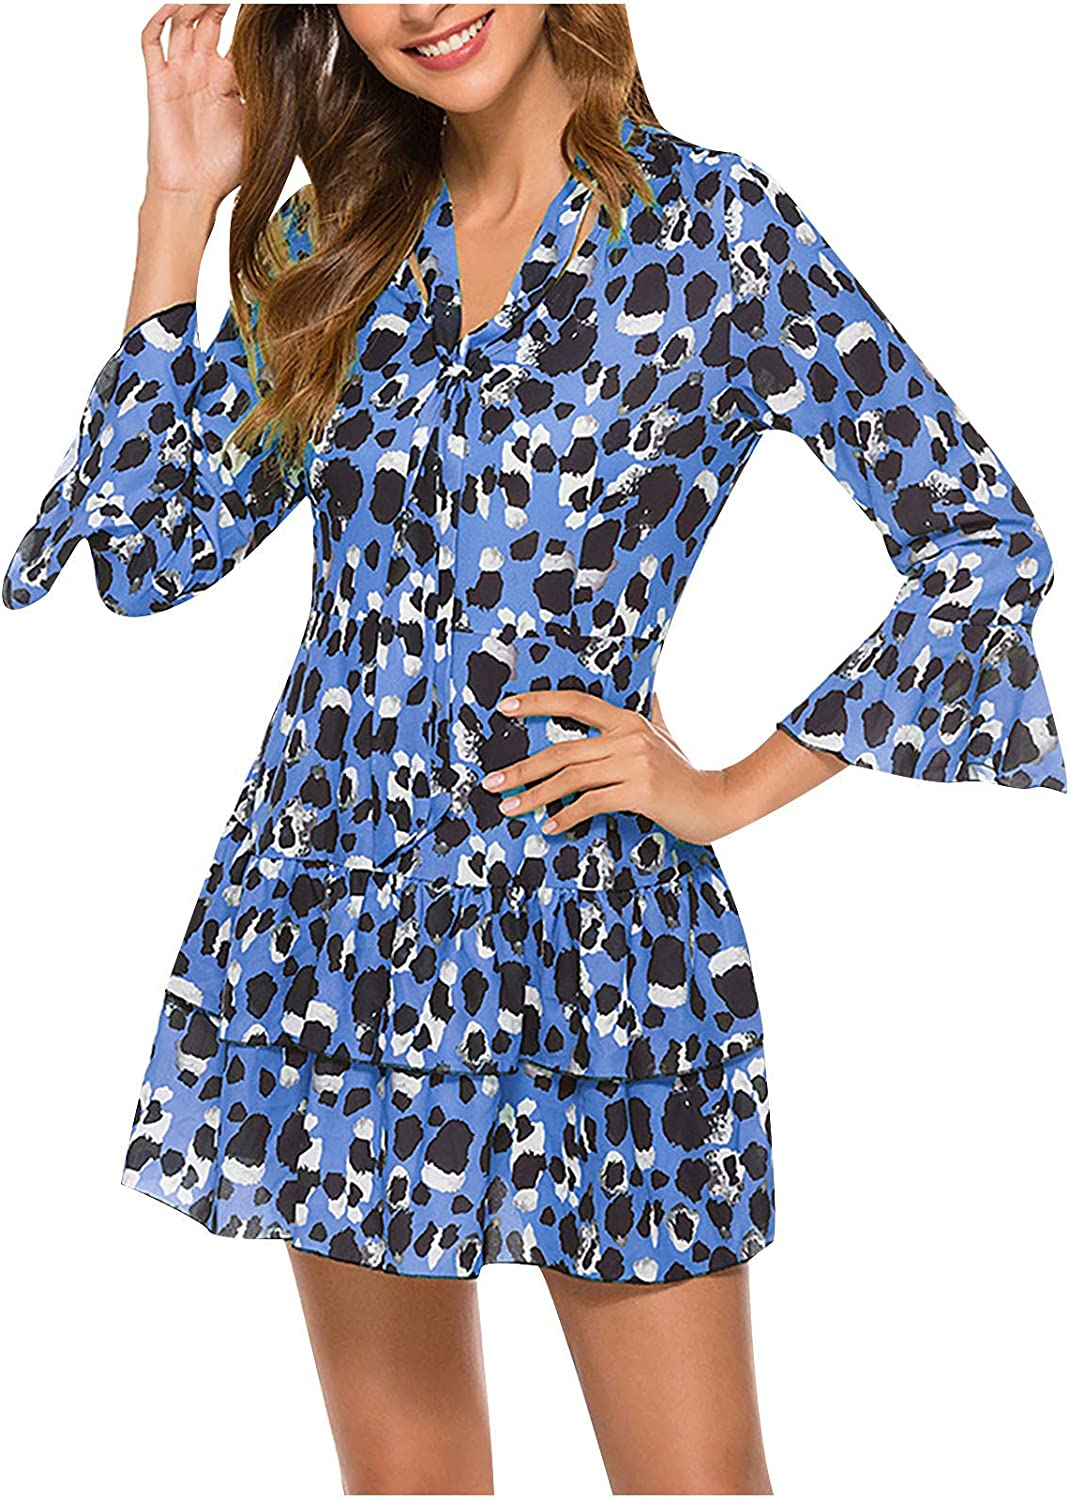 Qonii Dresses for Women 3 4 Sleeve Sale Directly managed store price Printing Band Dress